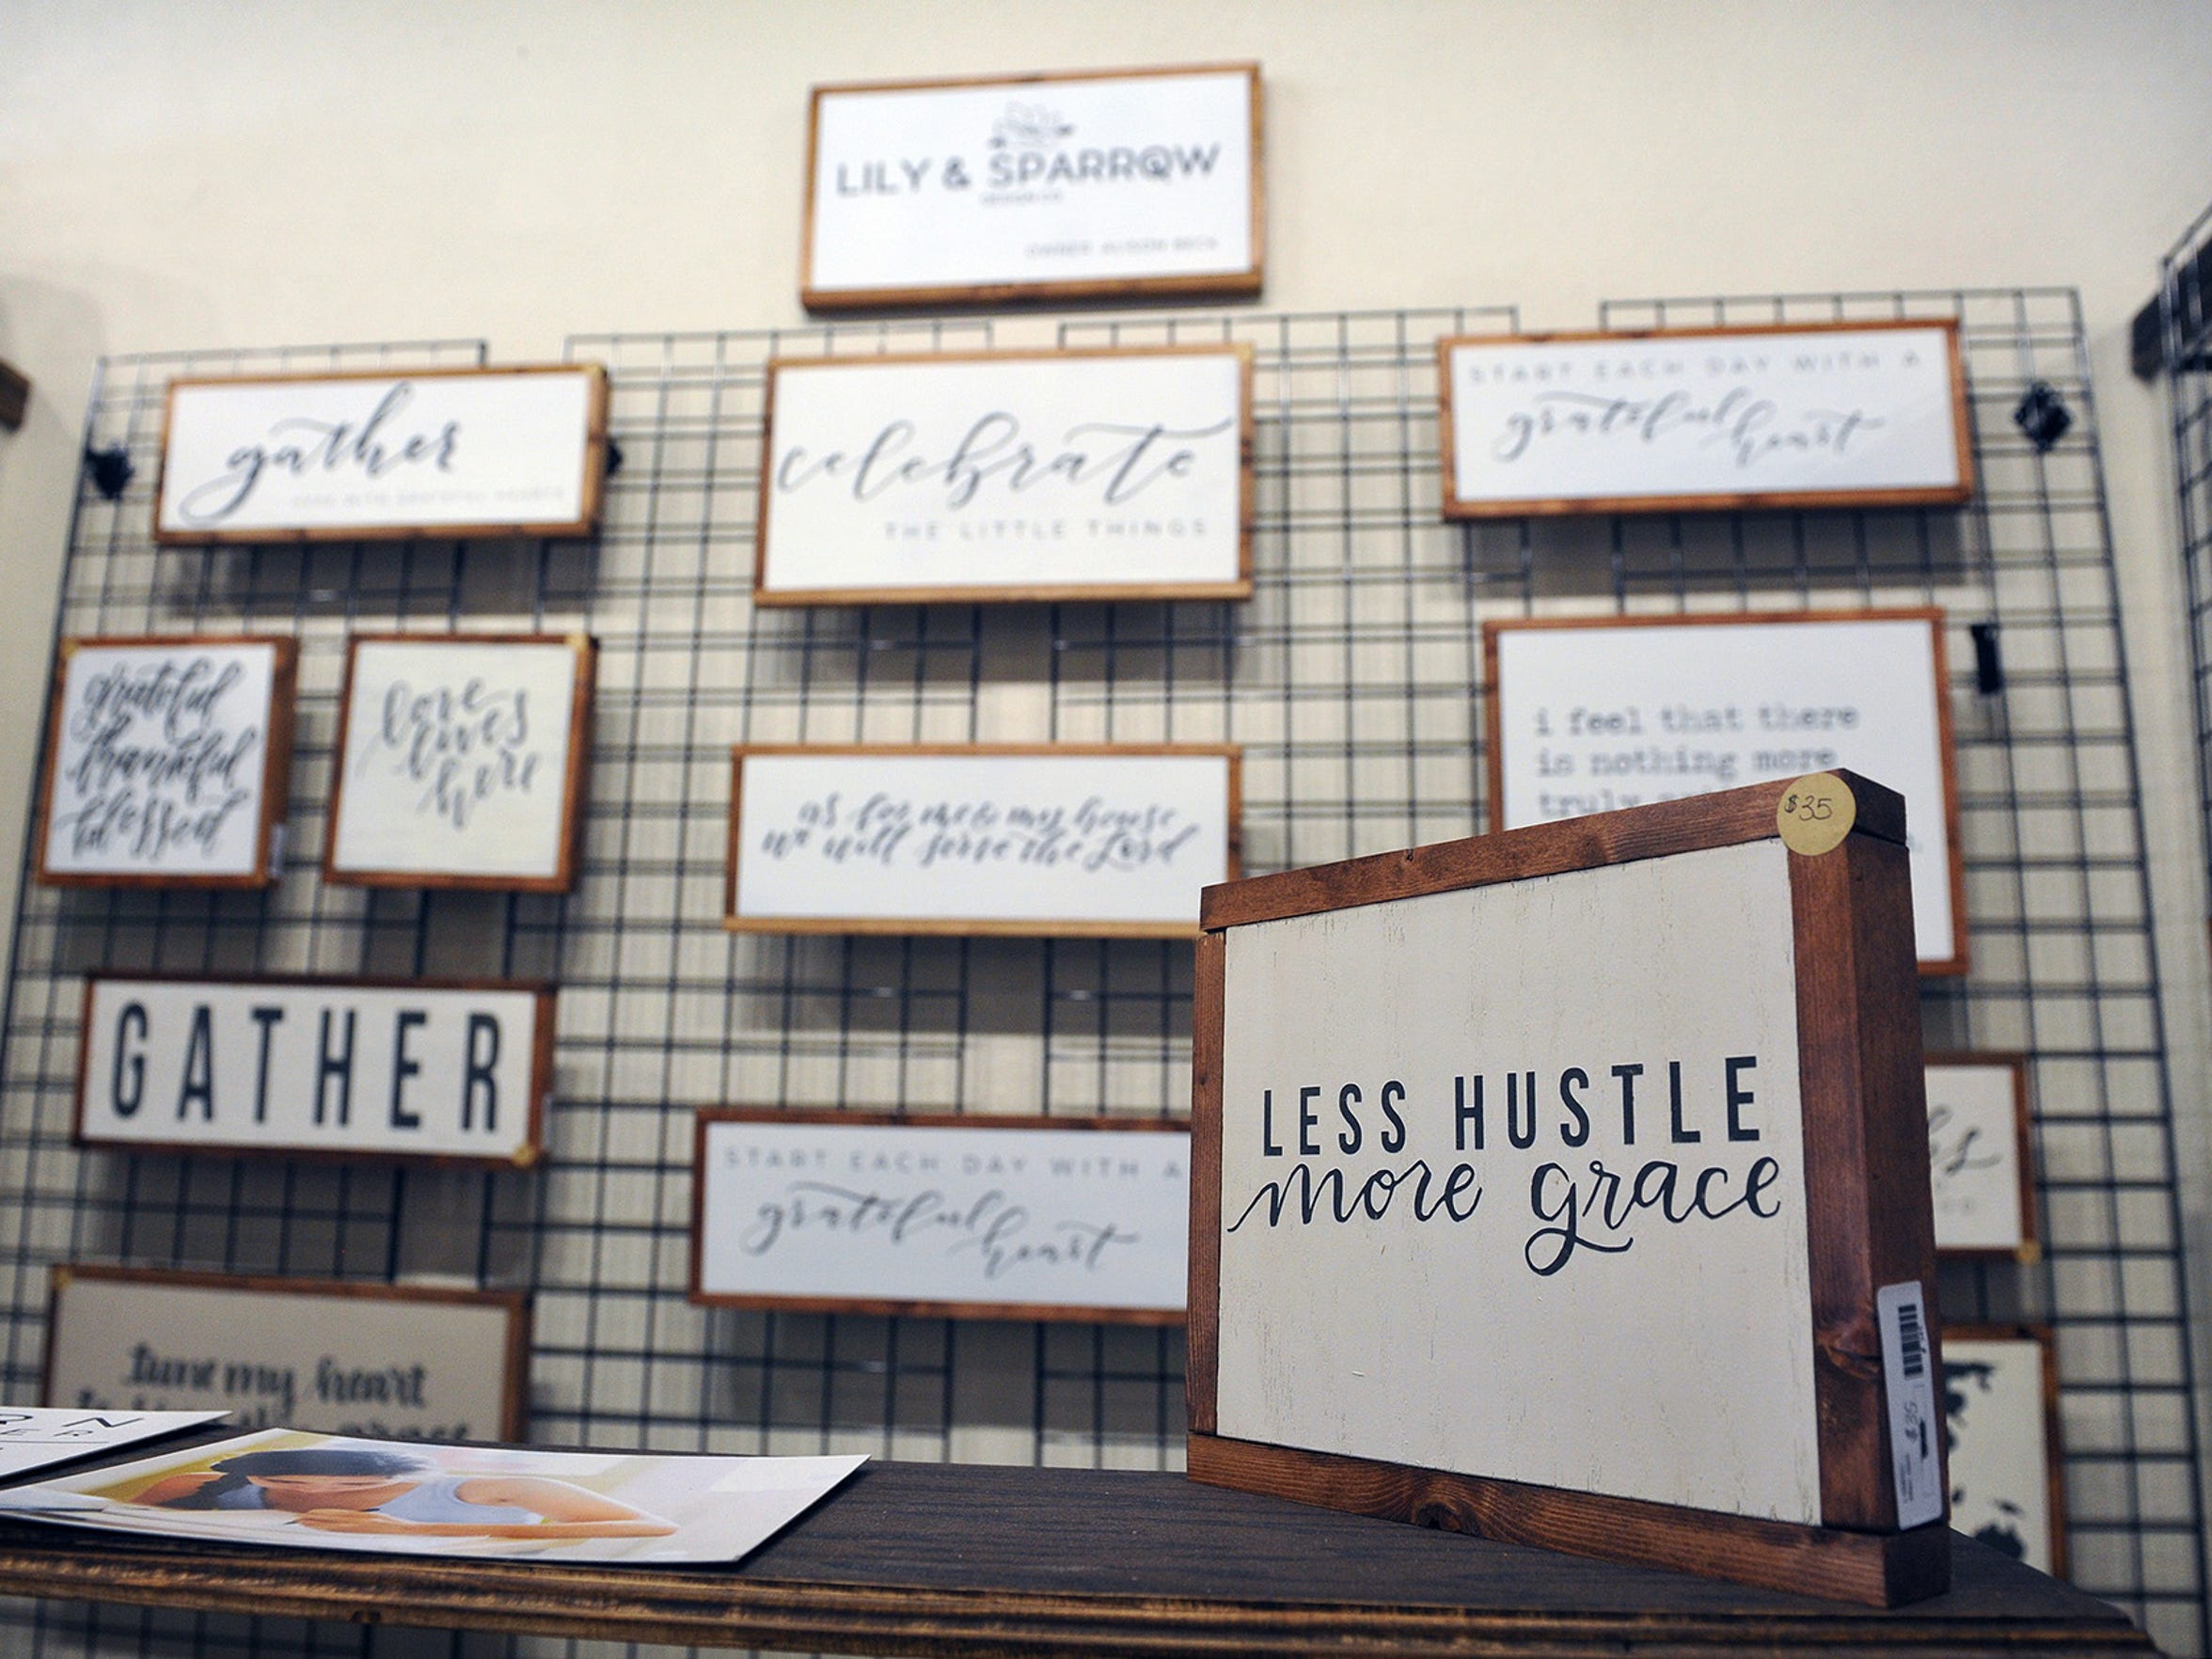 Hand-lettered, inspirational and faith-based framed pieces created by Alison Beck are available through her business, Lily & Sparrow, which is located in The Loft, a marketplace of local vendors with creative, high-end products. The Loft opened about three weeks ago and is owned by Sarah Williams and Tammy Robertson.